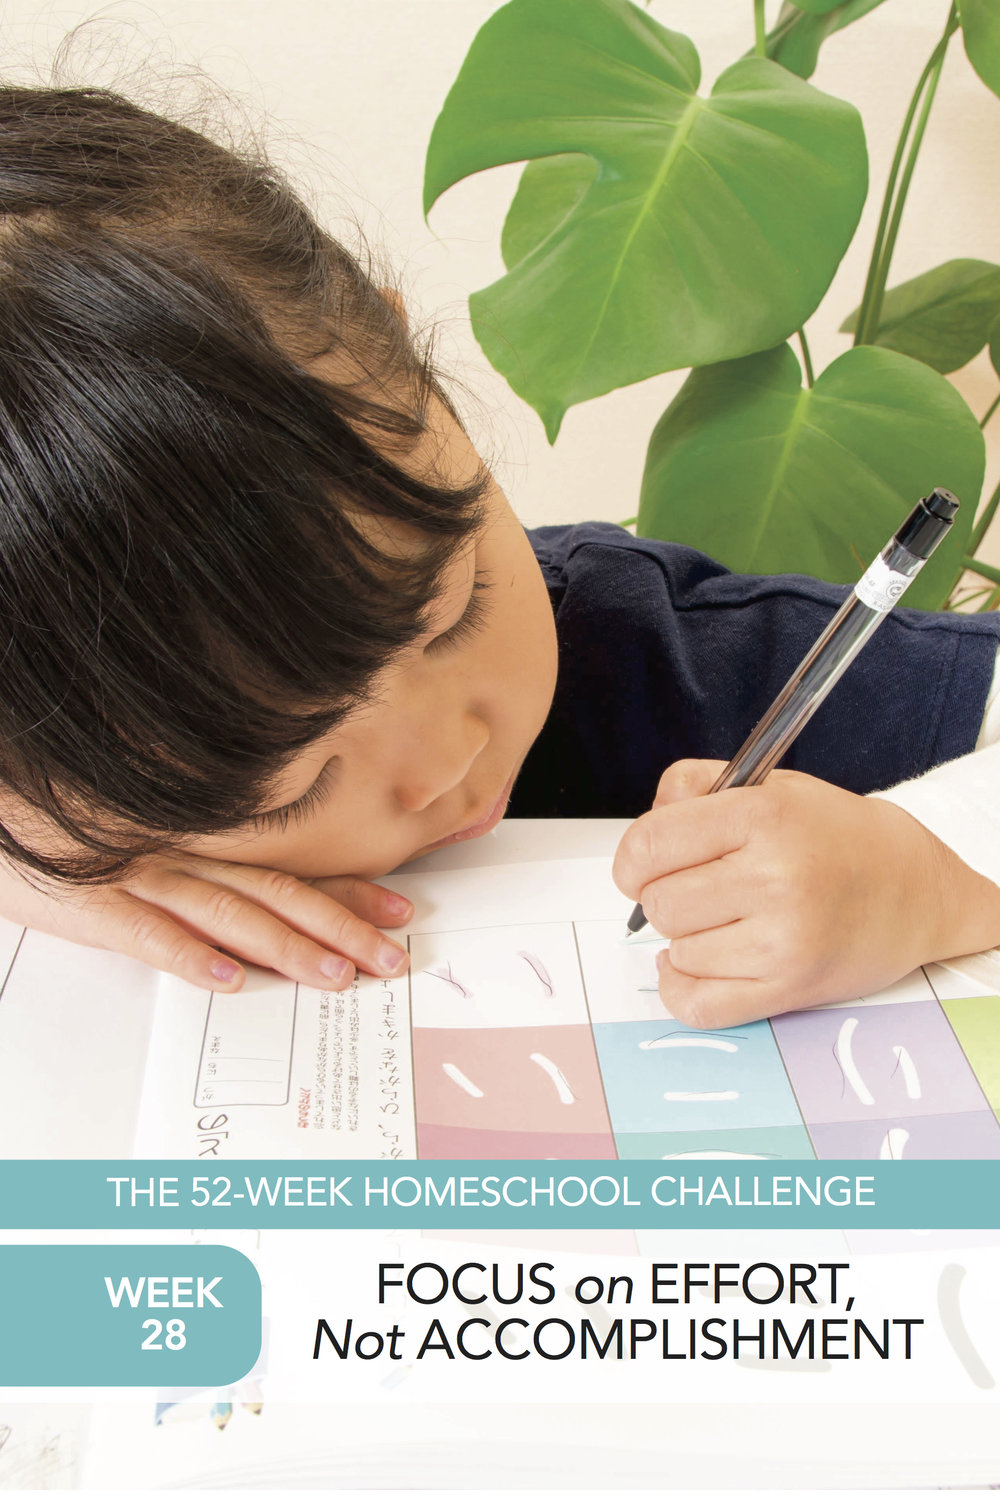 52 Weeks of Happier Homeschooling Week 28: Focus on Effort, Not Accomplishment